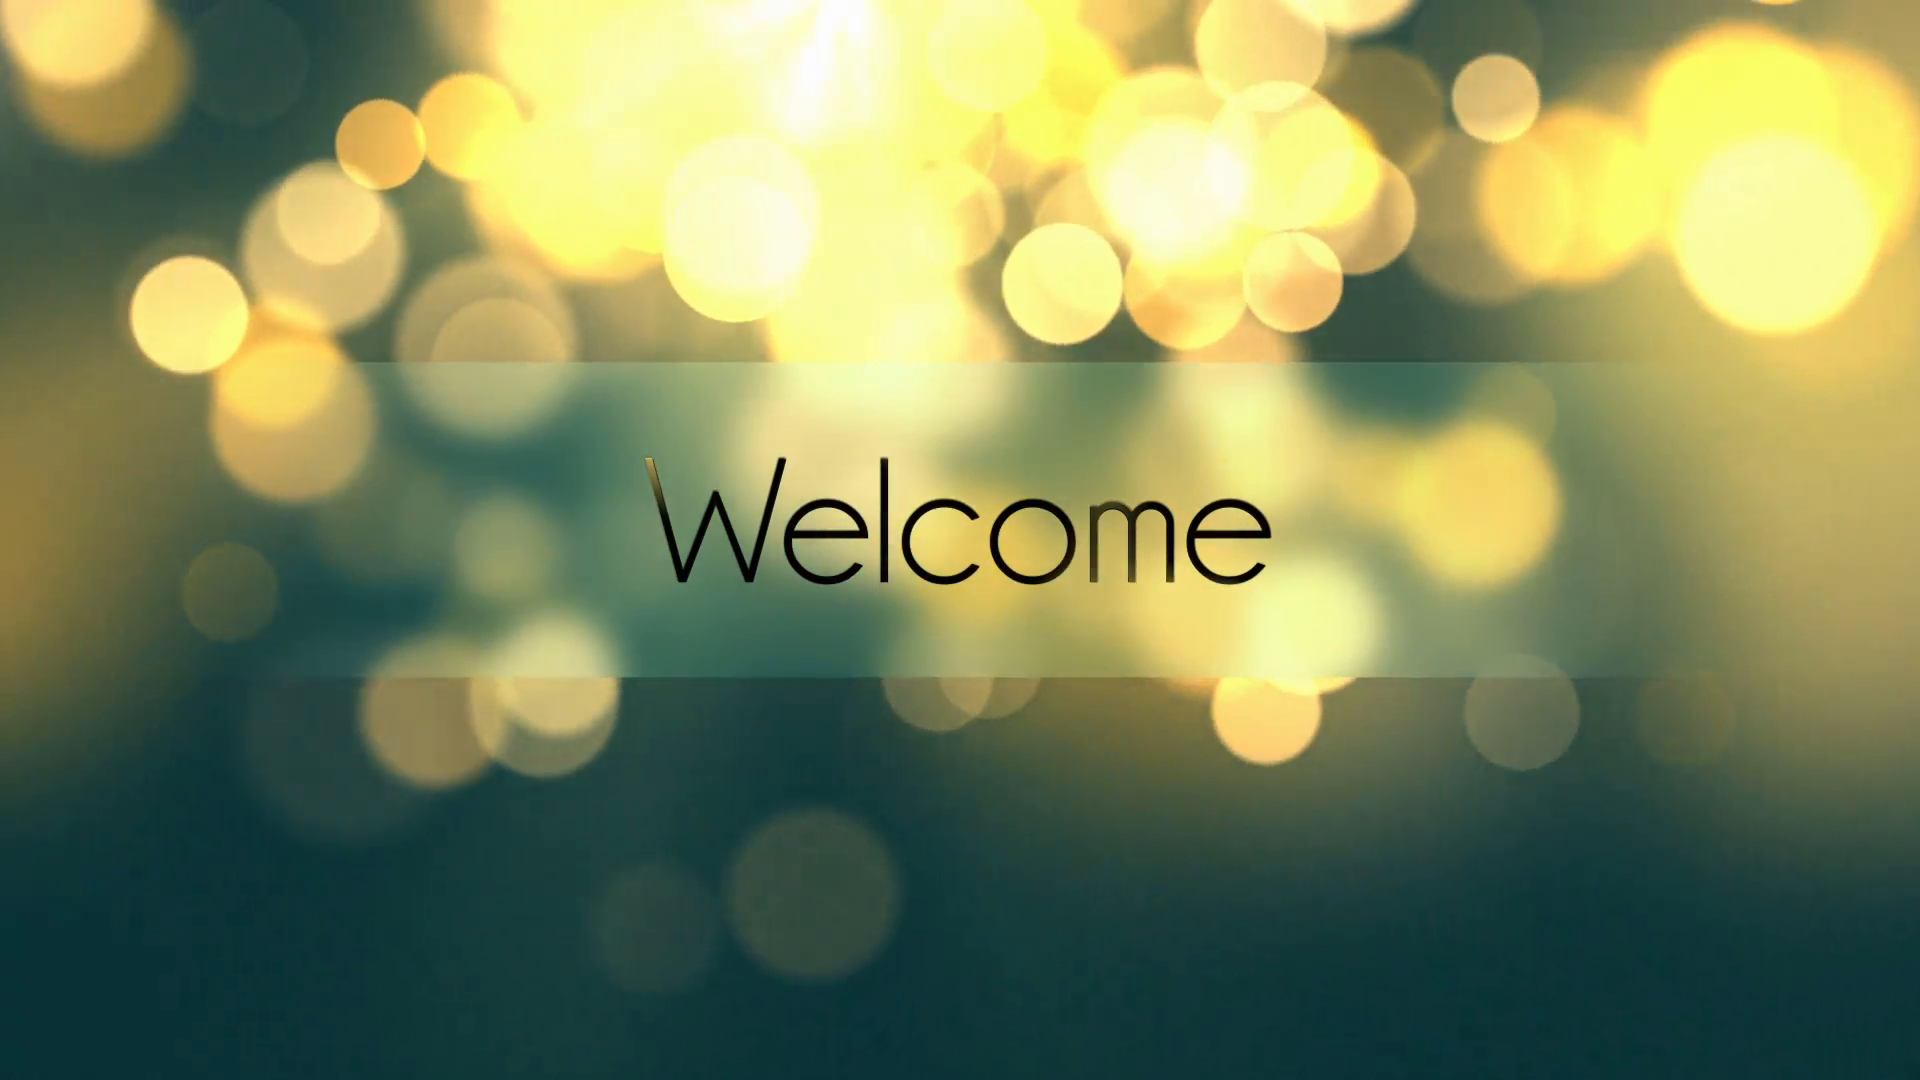 welcome-text-animation-over-bokeh-background_r7aij_yx__F0006.png